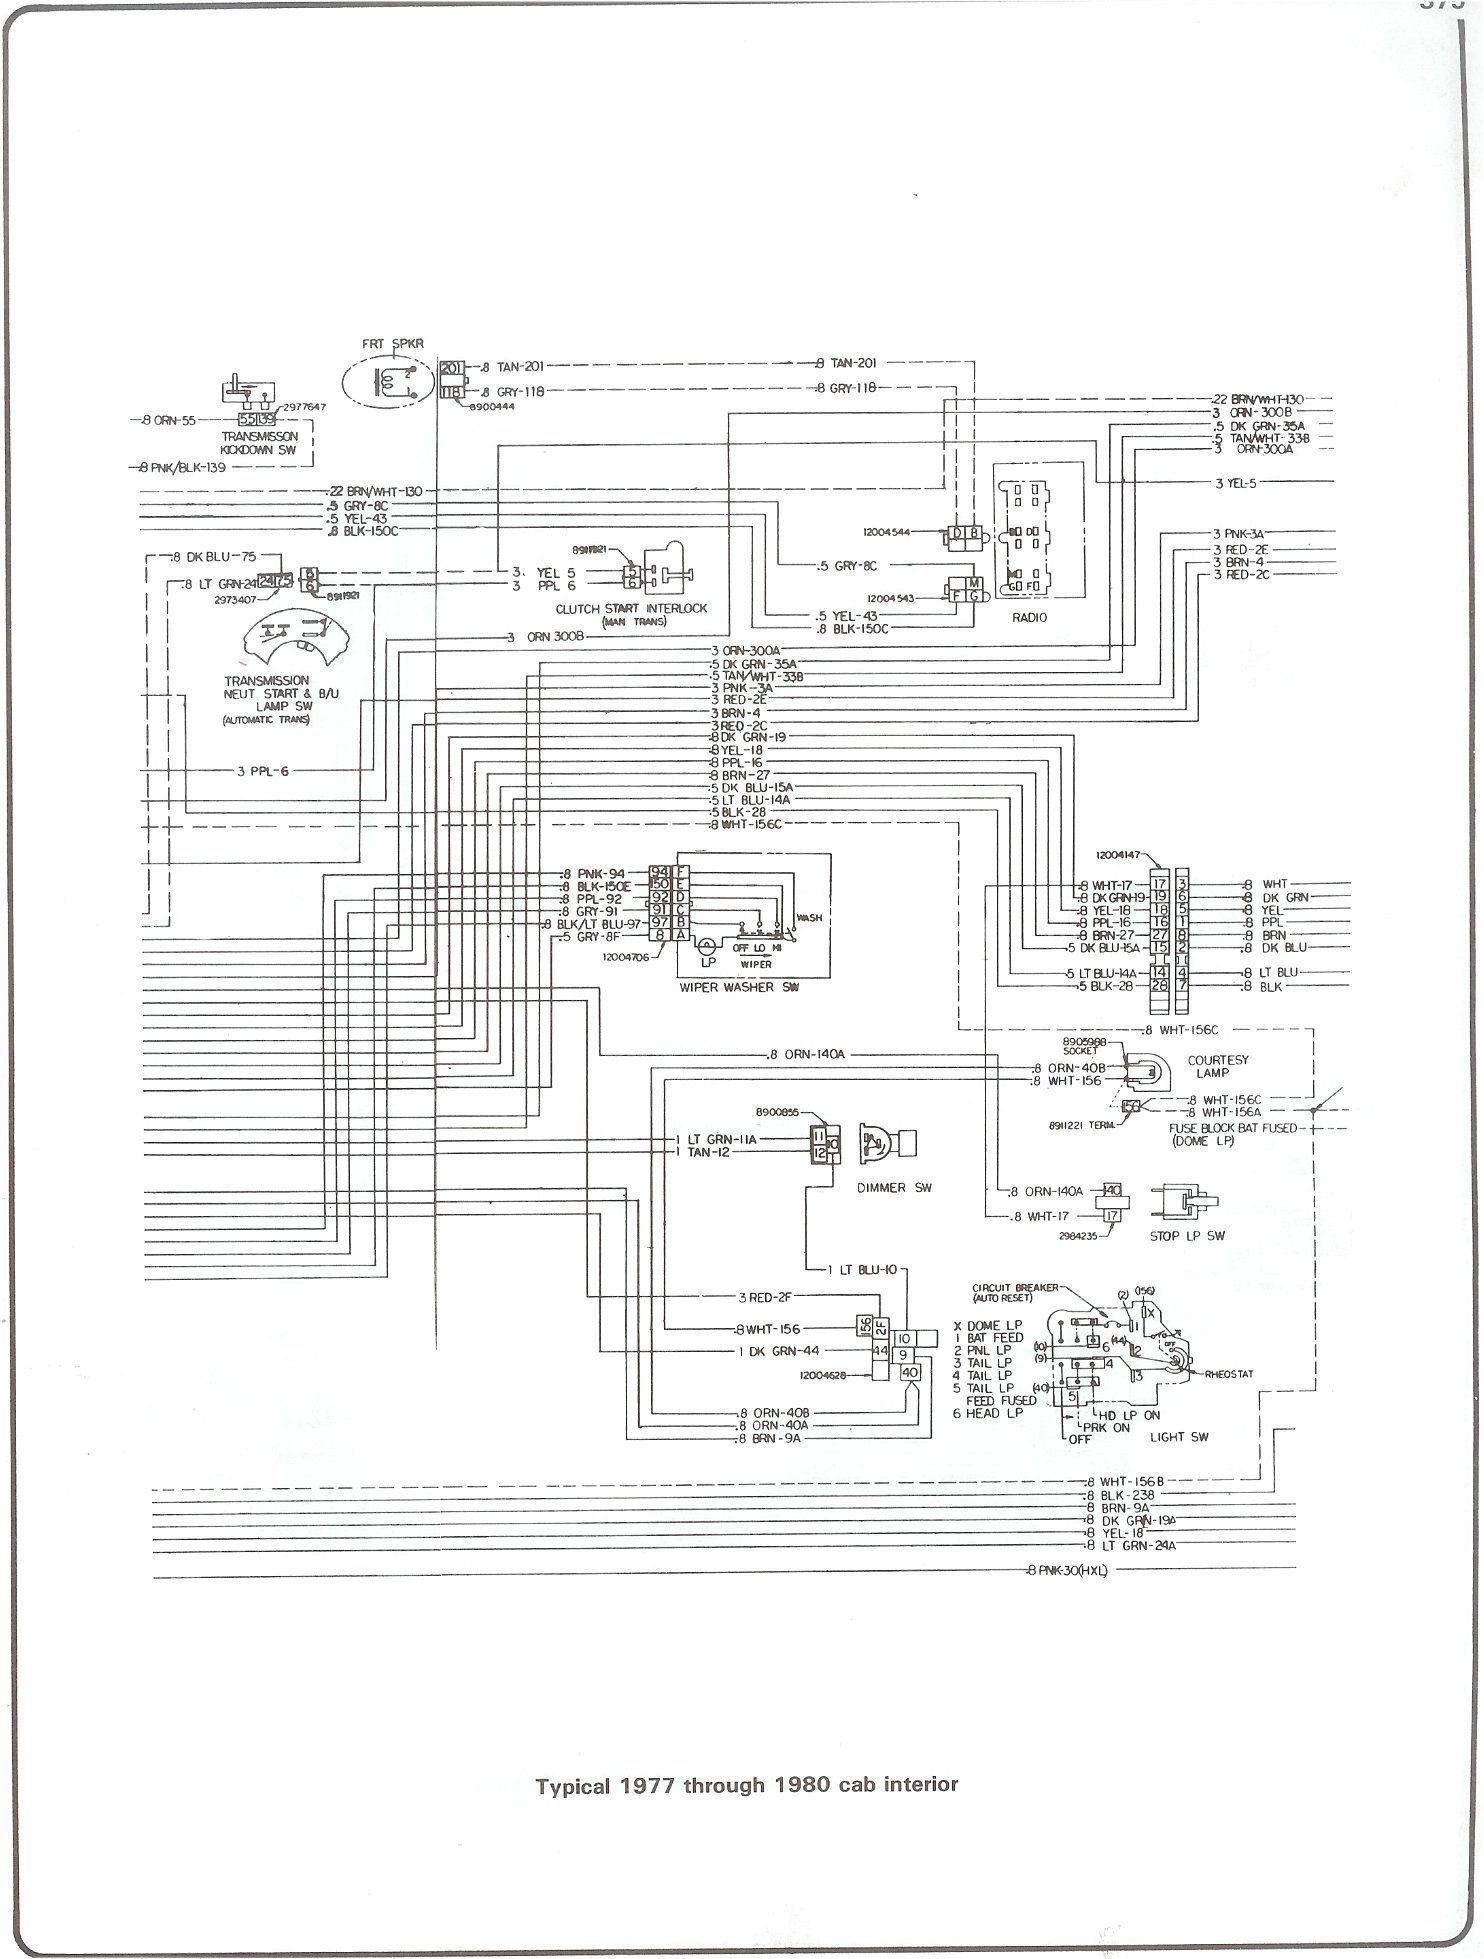 wrg 9159] 1974 firebird wiper wiring diagram free downloadcomplete 73 87 wiring diagrams 68 camaro wiper motor wiring c10 wiper switch wiring